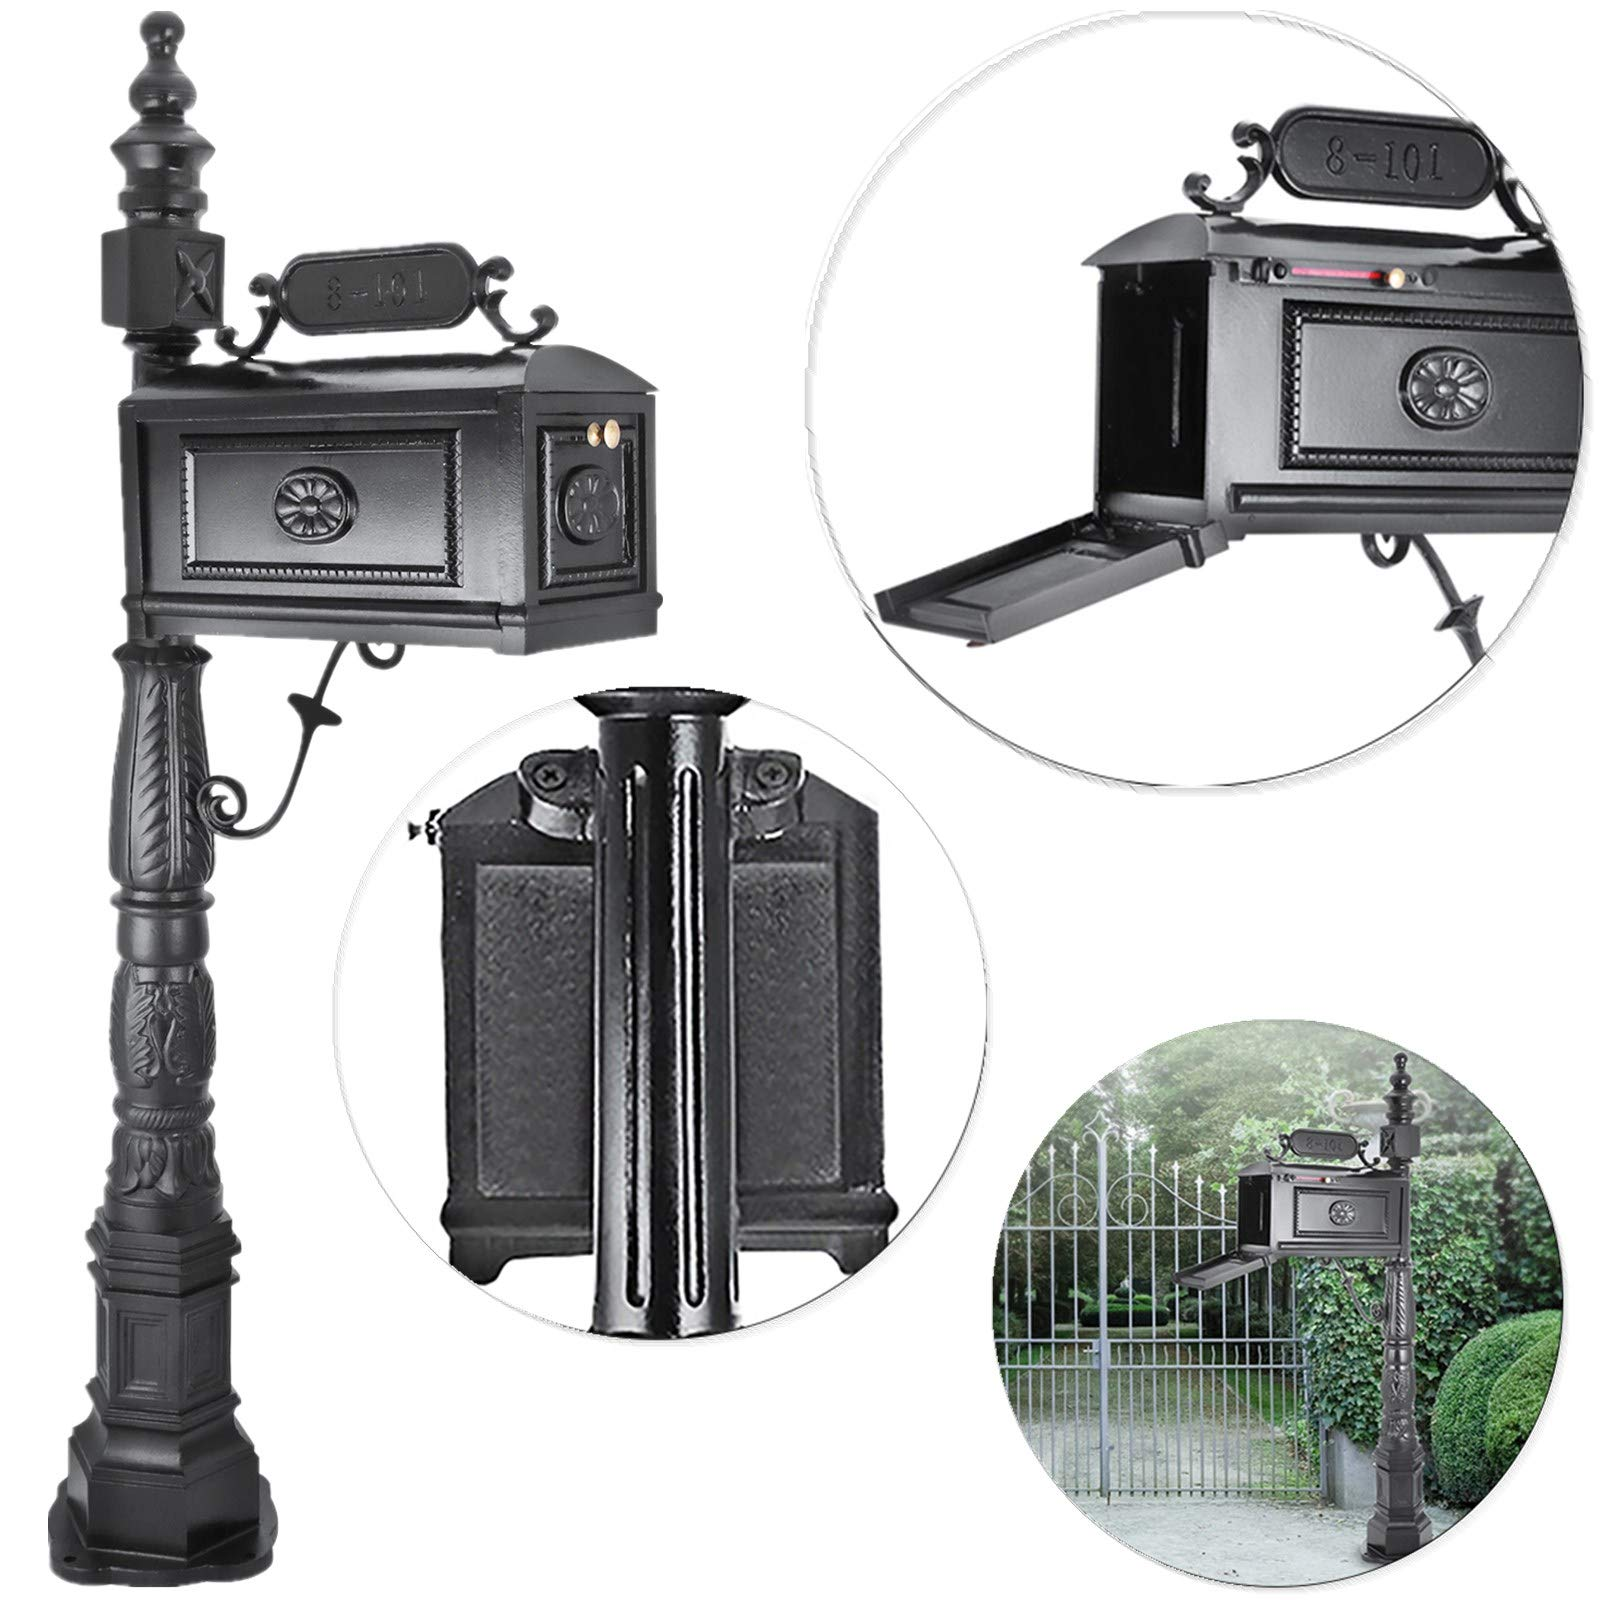 Happybuy Cast Aluminum Mailbox 64 x 10.5 inch with 18 x 8.5 inch Postbox Barcelona Decorative Post Mailbox Combination Stratford Heavy Duty Mailbox & Post System Black for Family Garden Outdoor by Happybuy (Image #1)